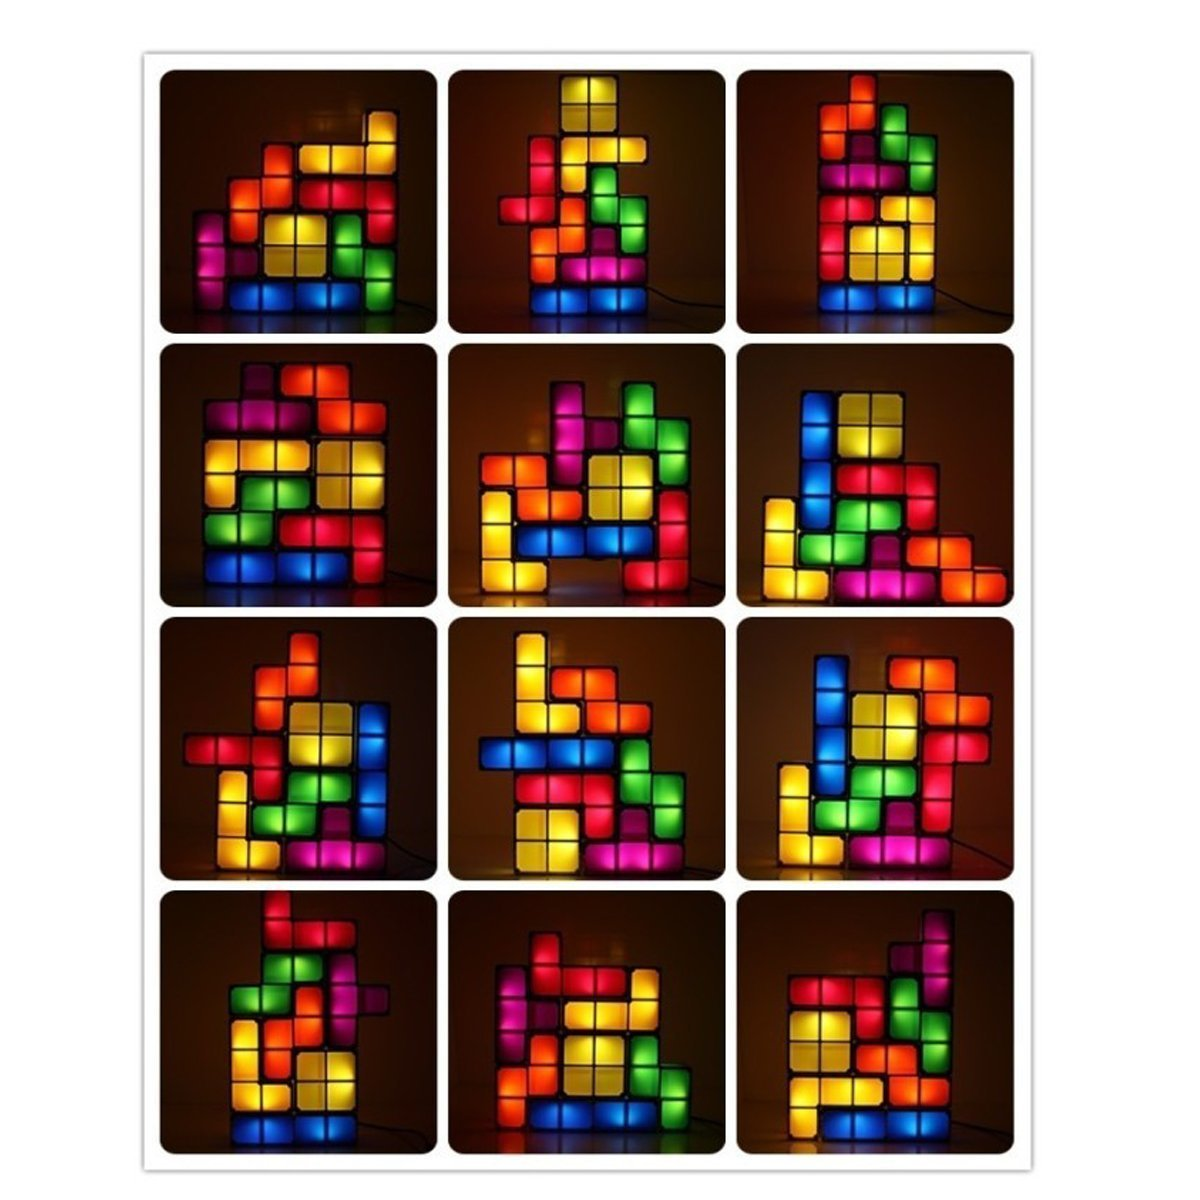 Tetris led puzzle desk lamp reviews and deals tetris puzzle desk lamp led constructible block table decorative stackable night light combos geotapseo Gallery